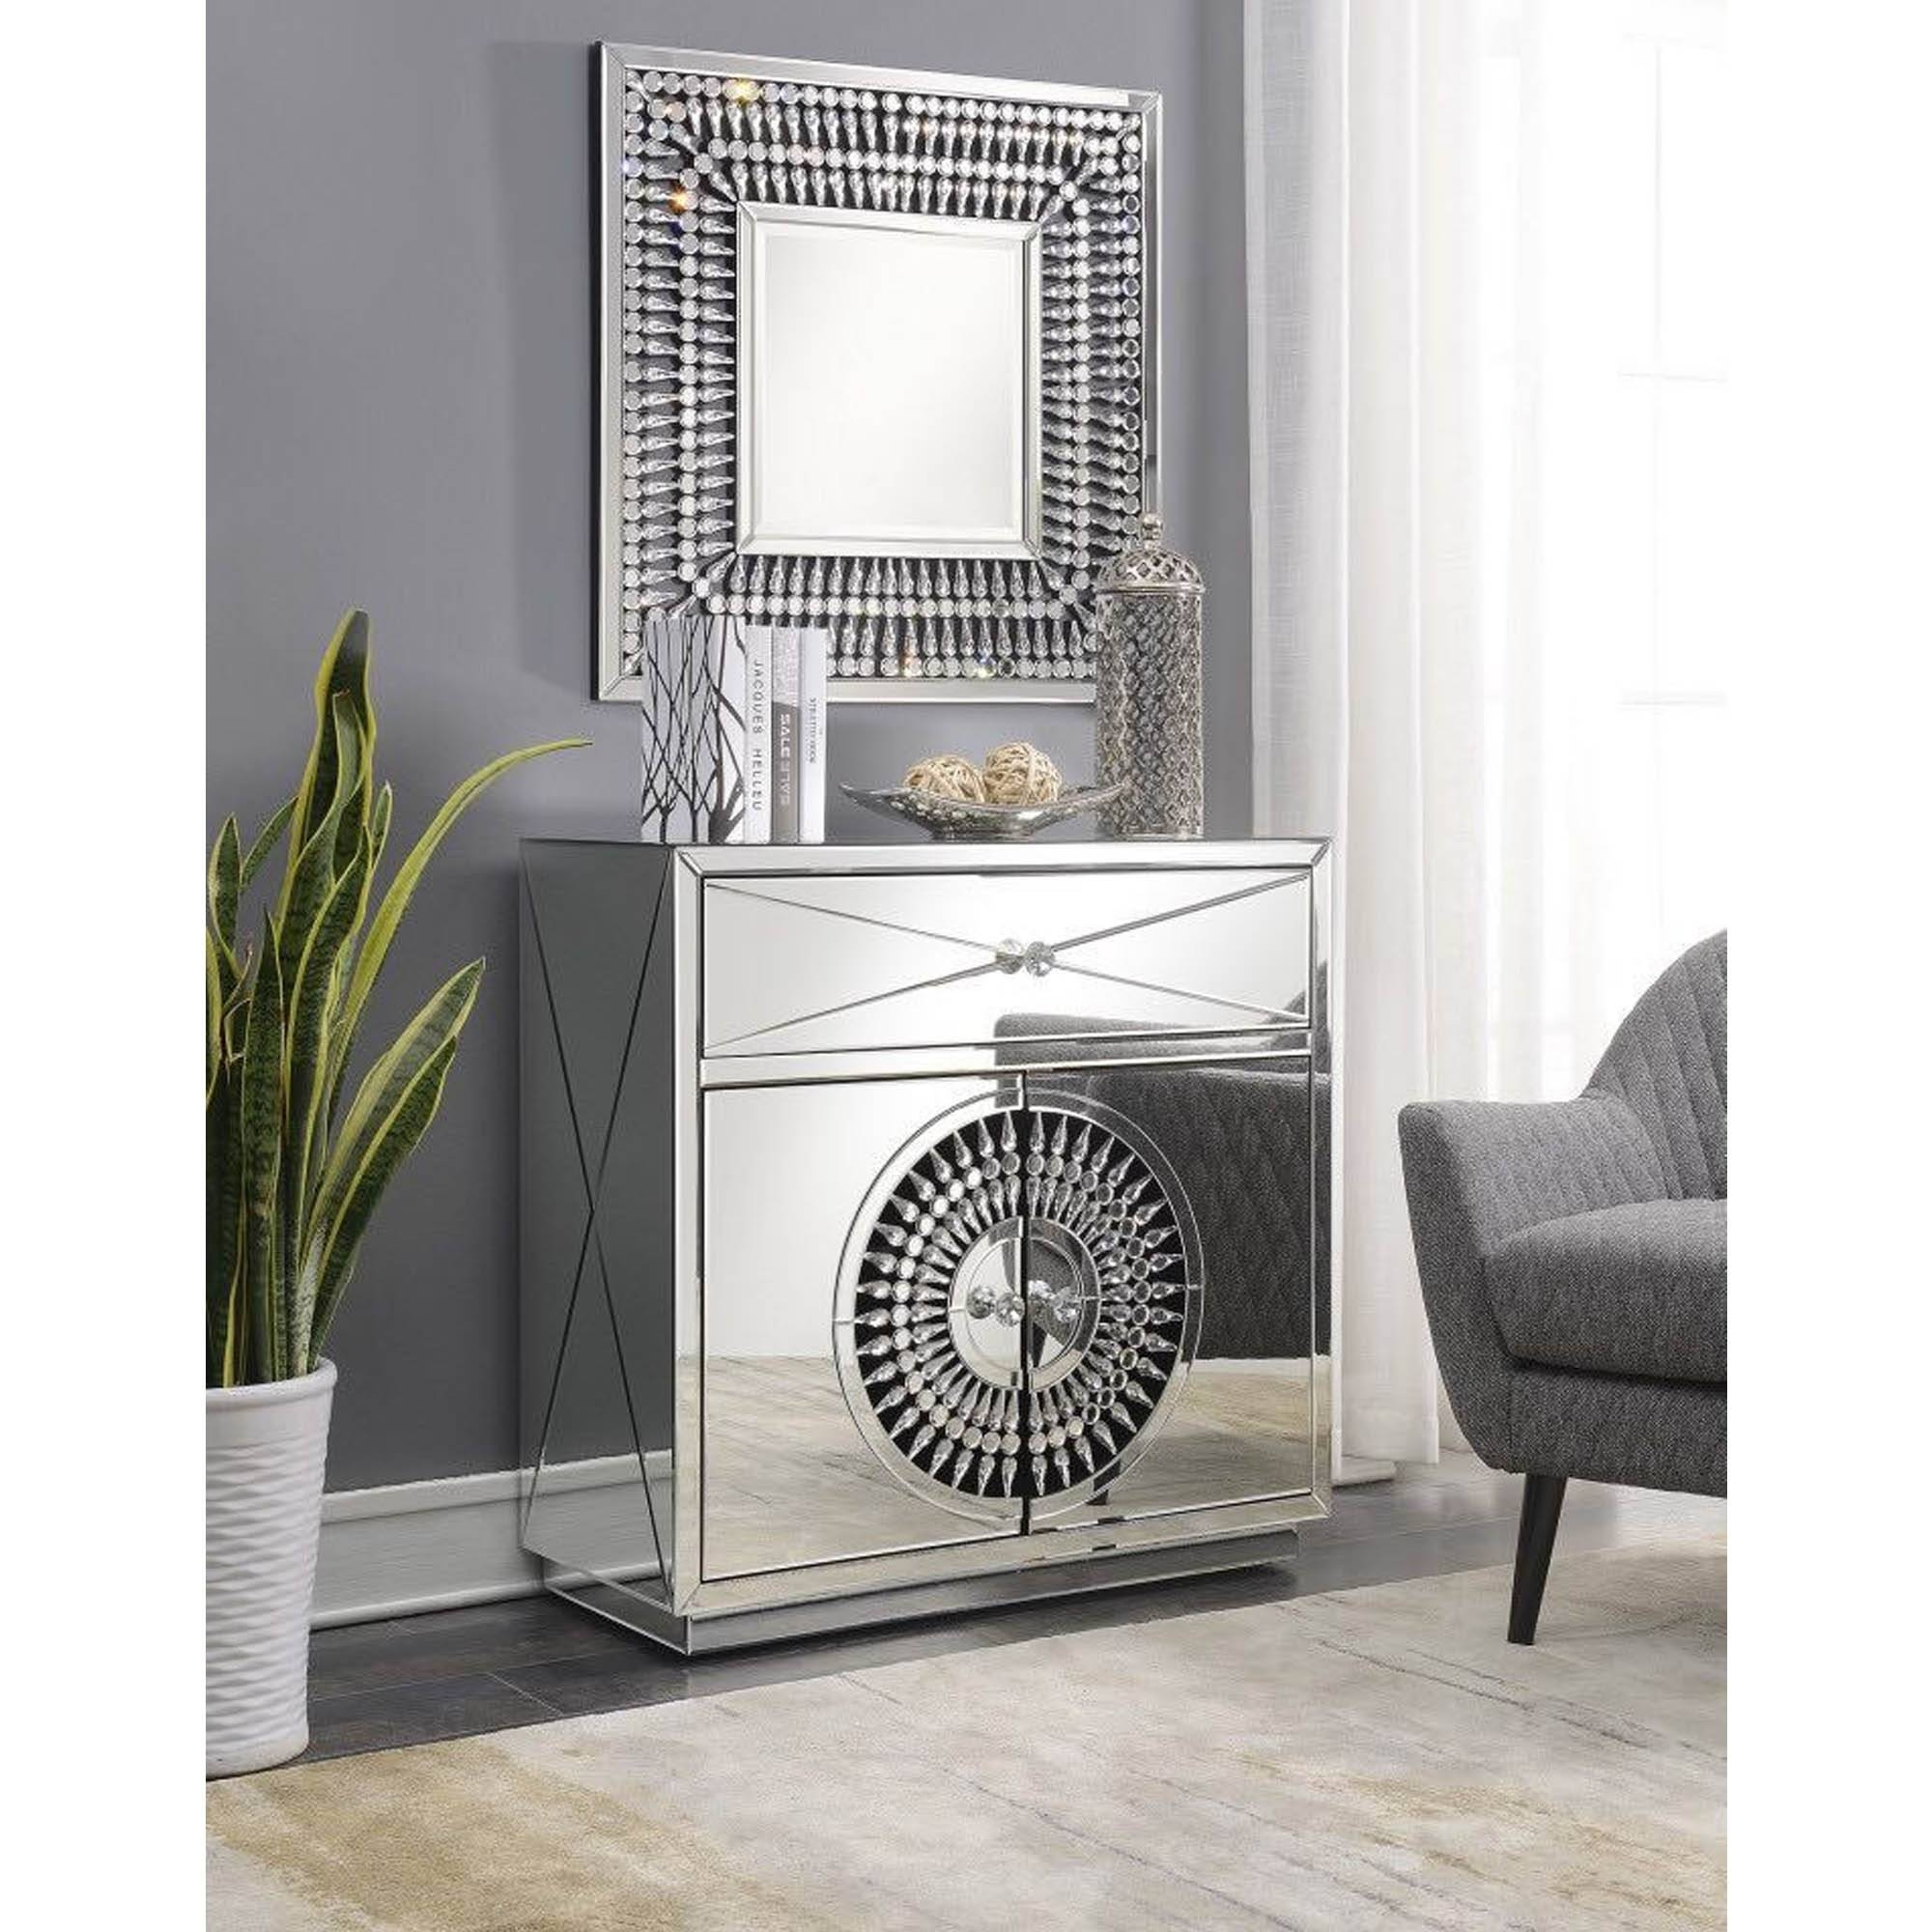 Crystal Mirrored Sideboard | Sideboard | Homesdirect365 In Mirror Sideboards (View 10 of 15)